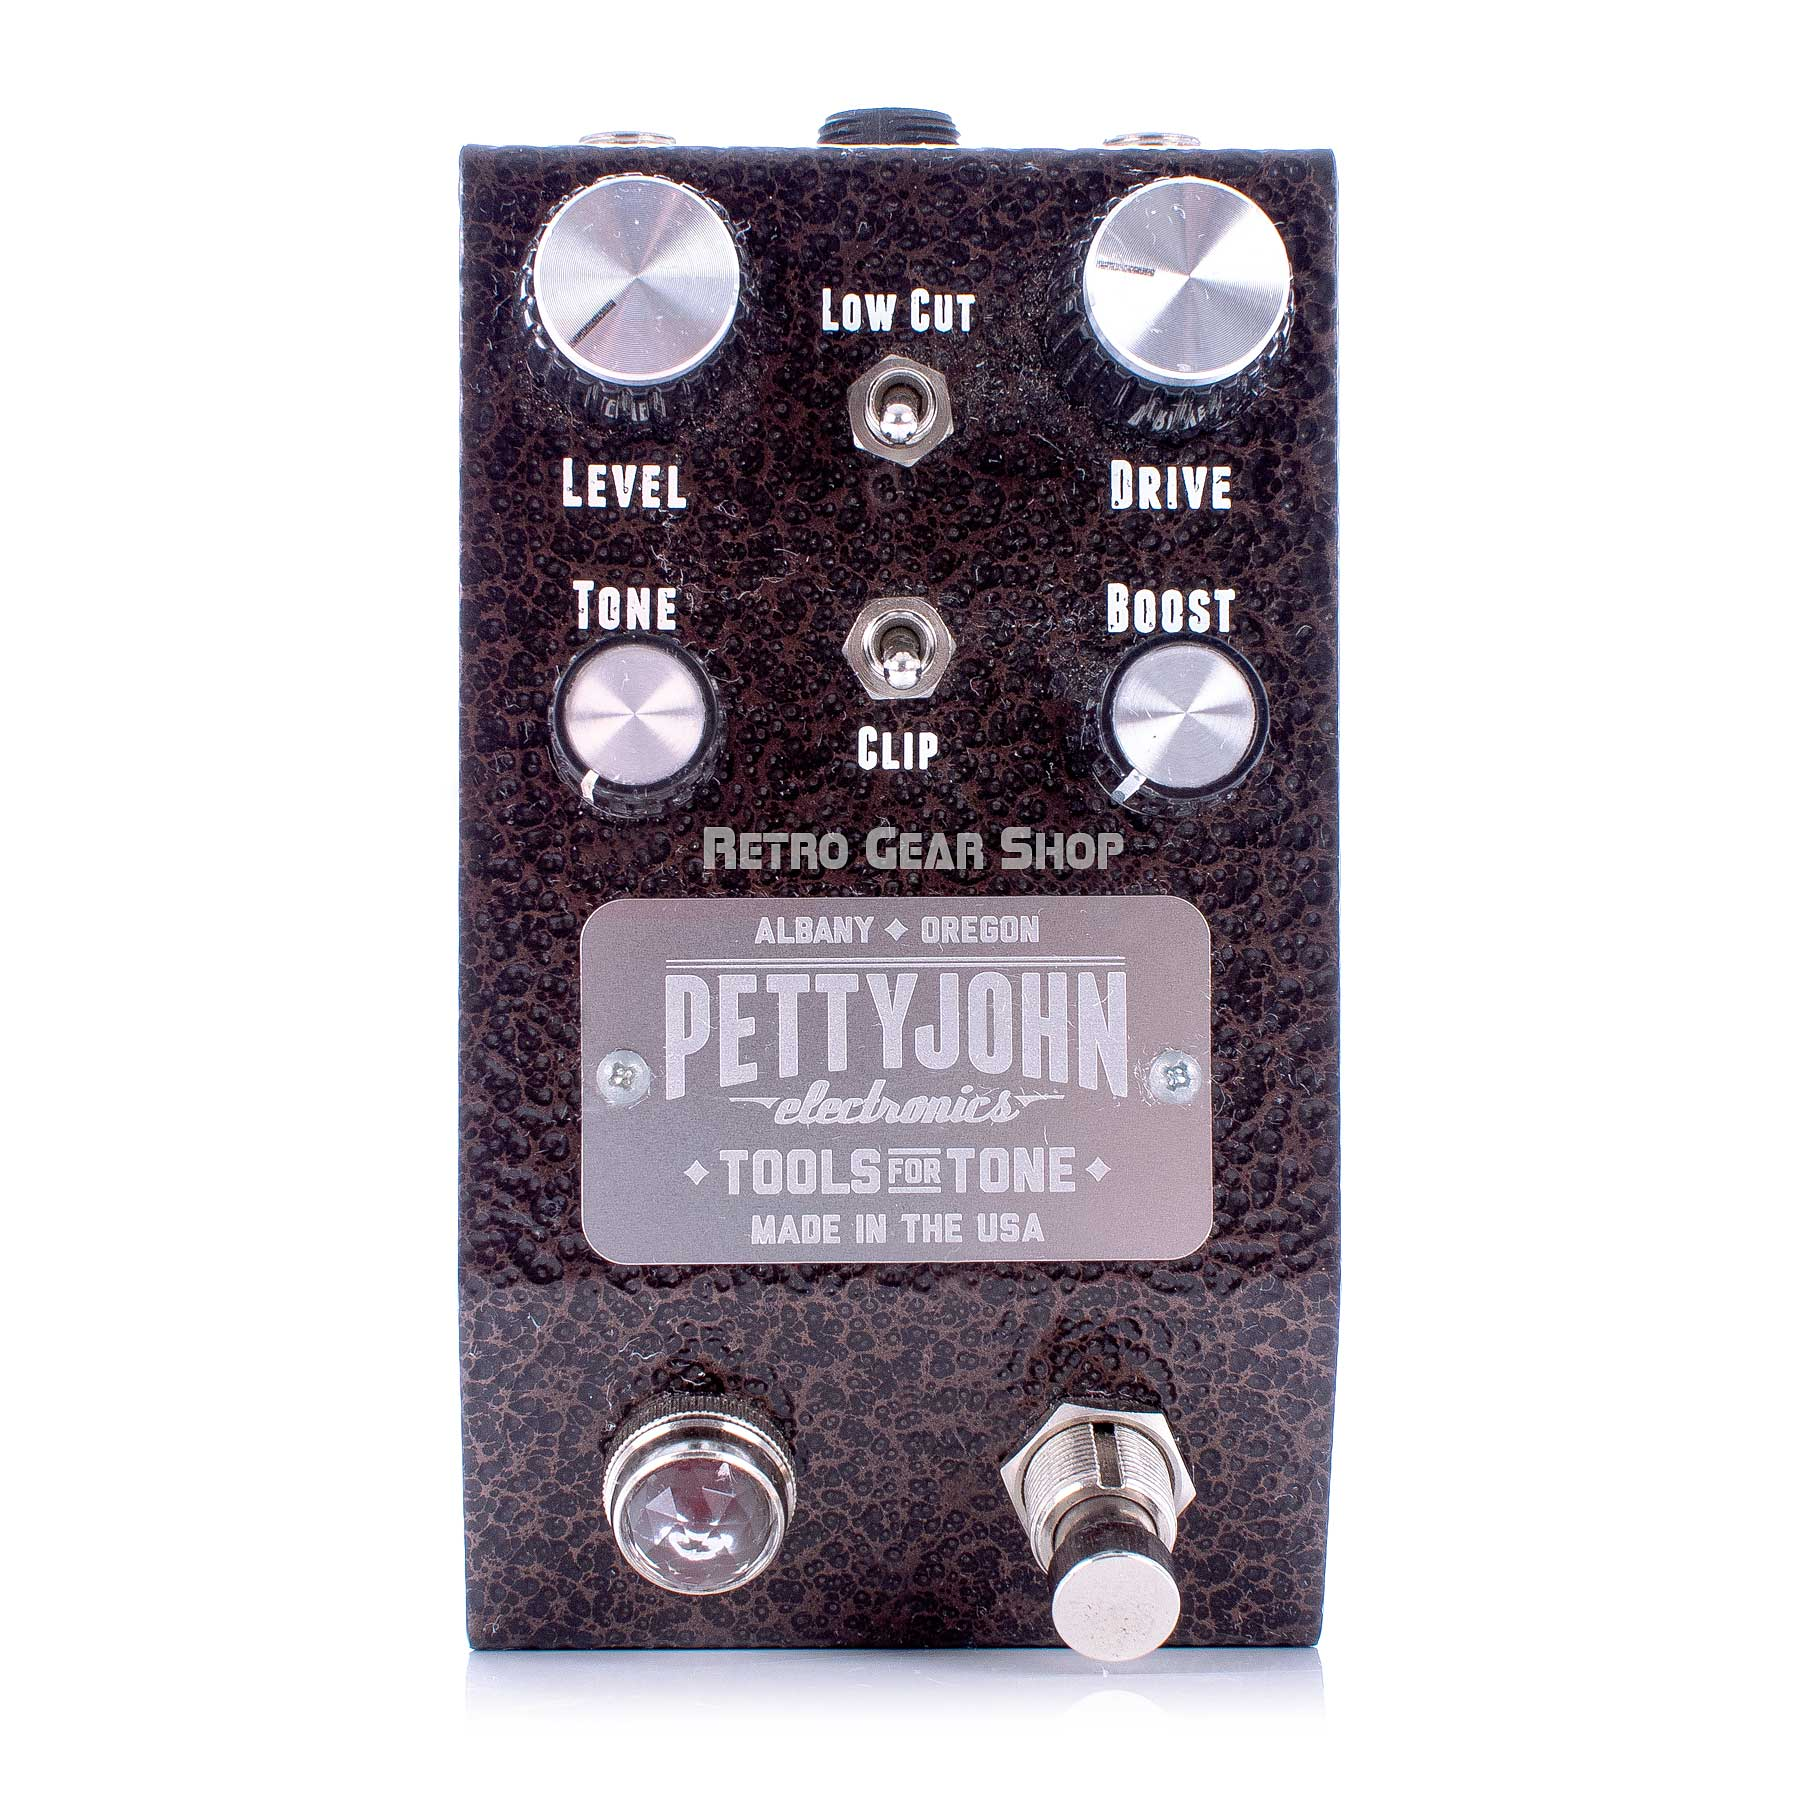 Pettyjohn Electronics Gold Drive Overdrive Top